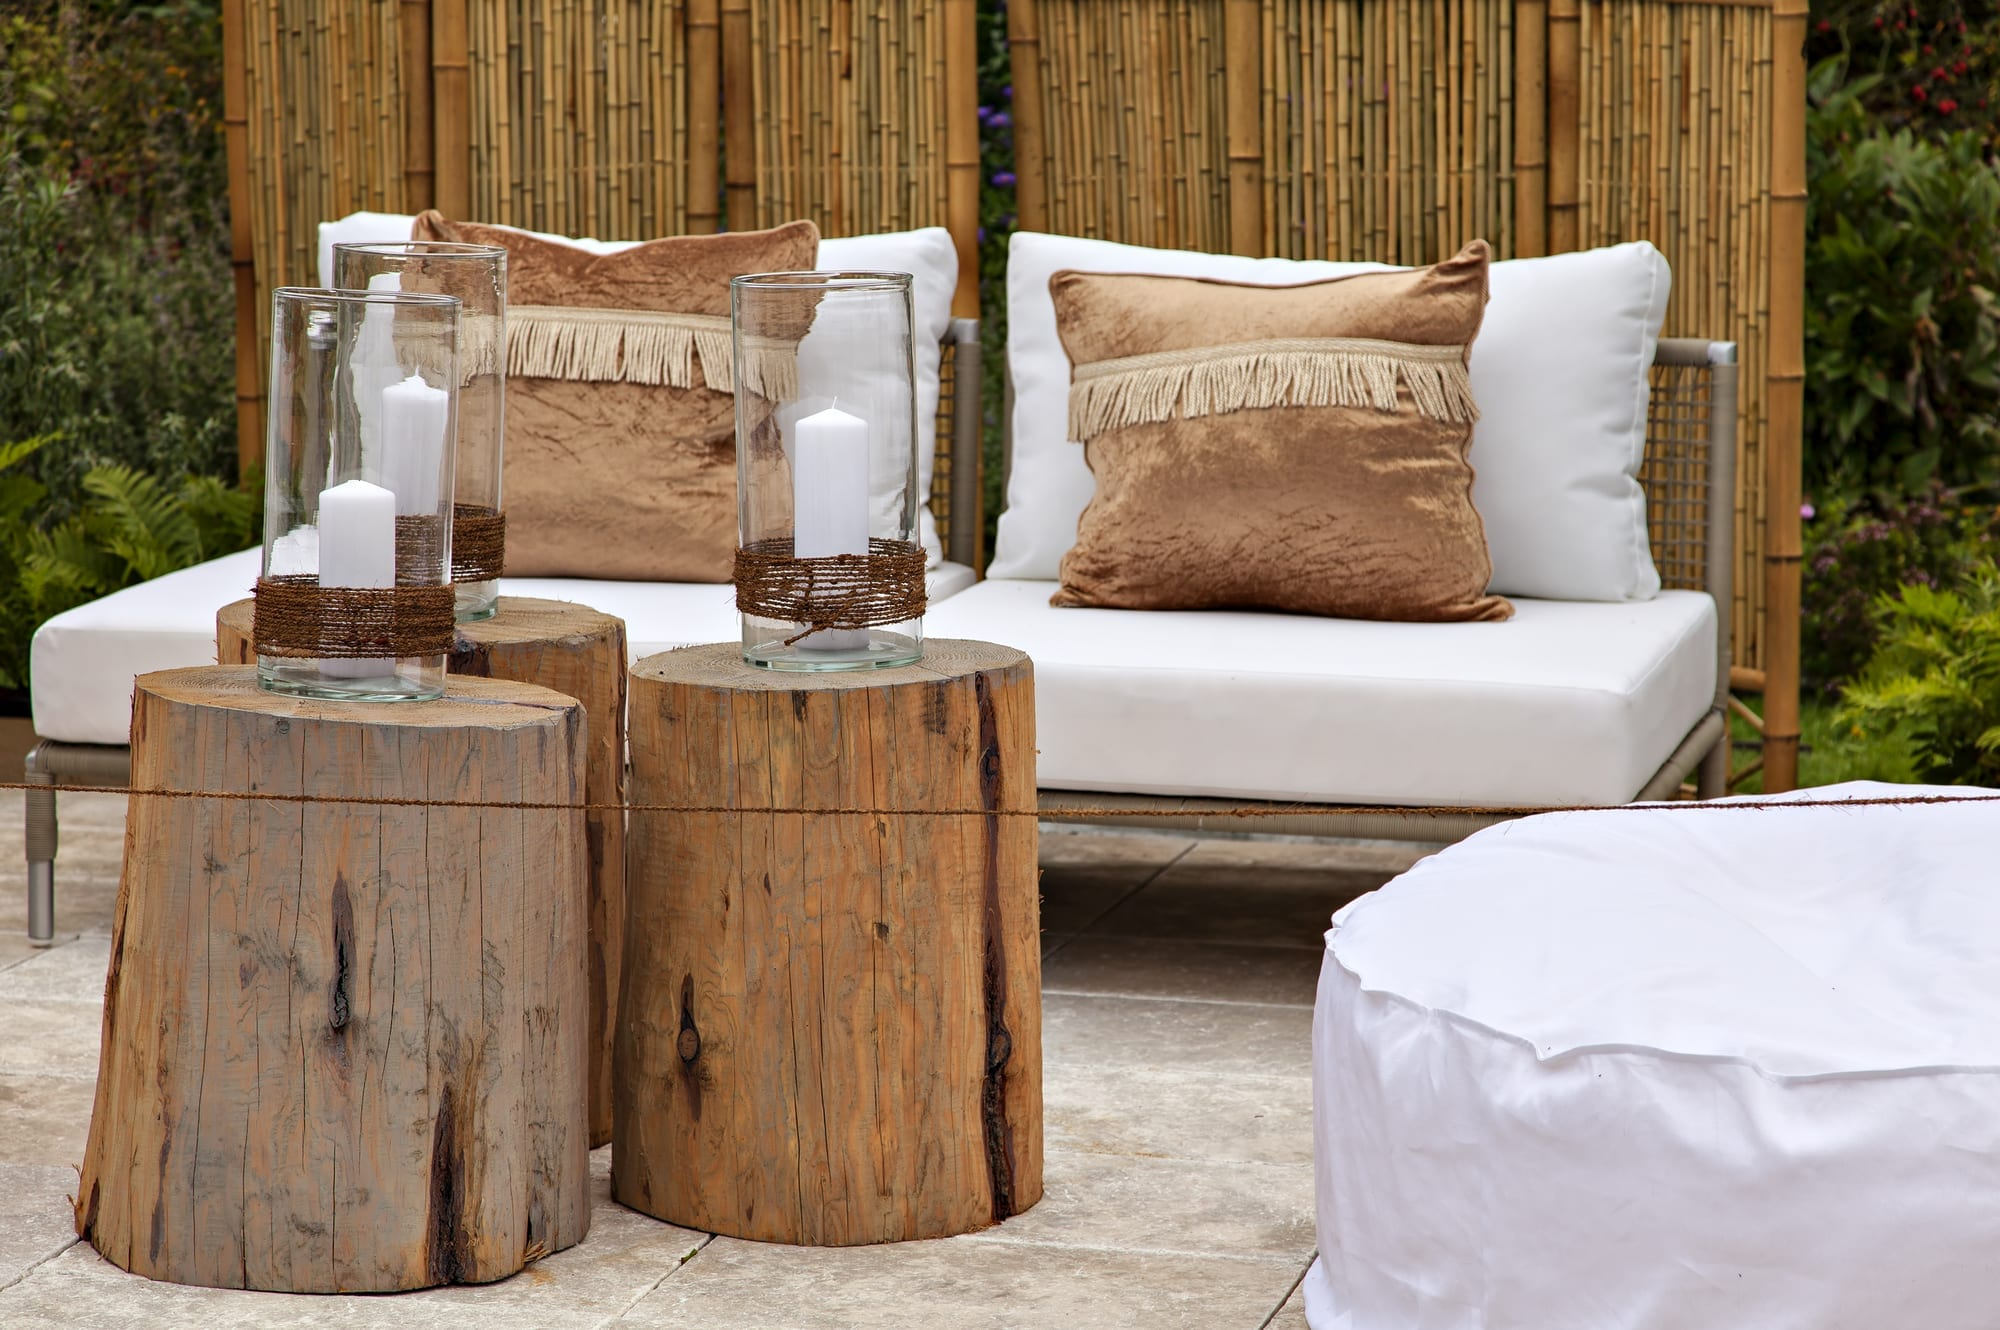 Stylish sitting area with tree stumps